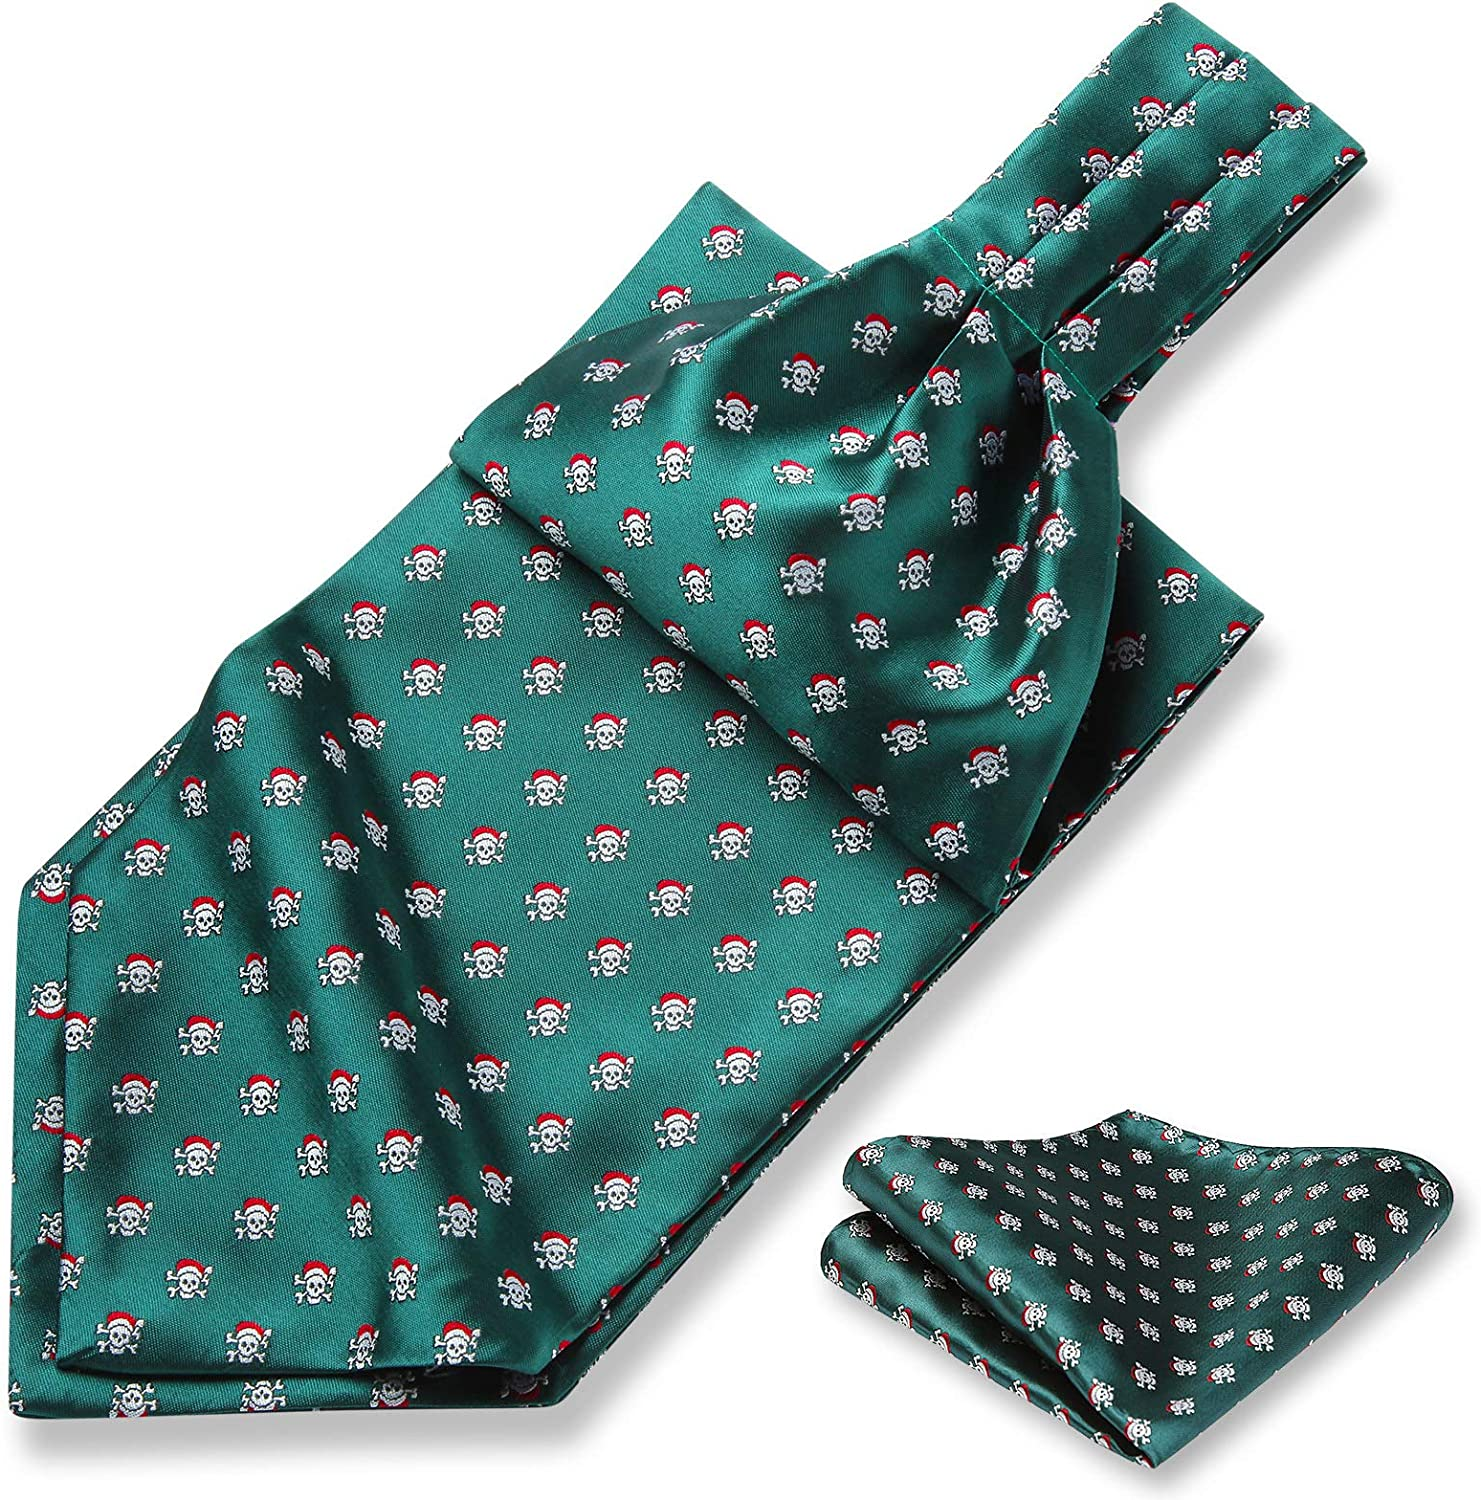 HISDERN Mens Christmas Ascot Ties Festival Snowflake Cravat Scarf Necktie & Pocket Square Set for Holiday Party